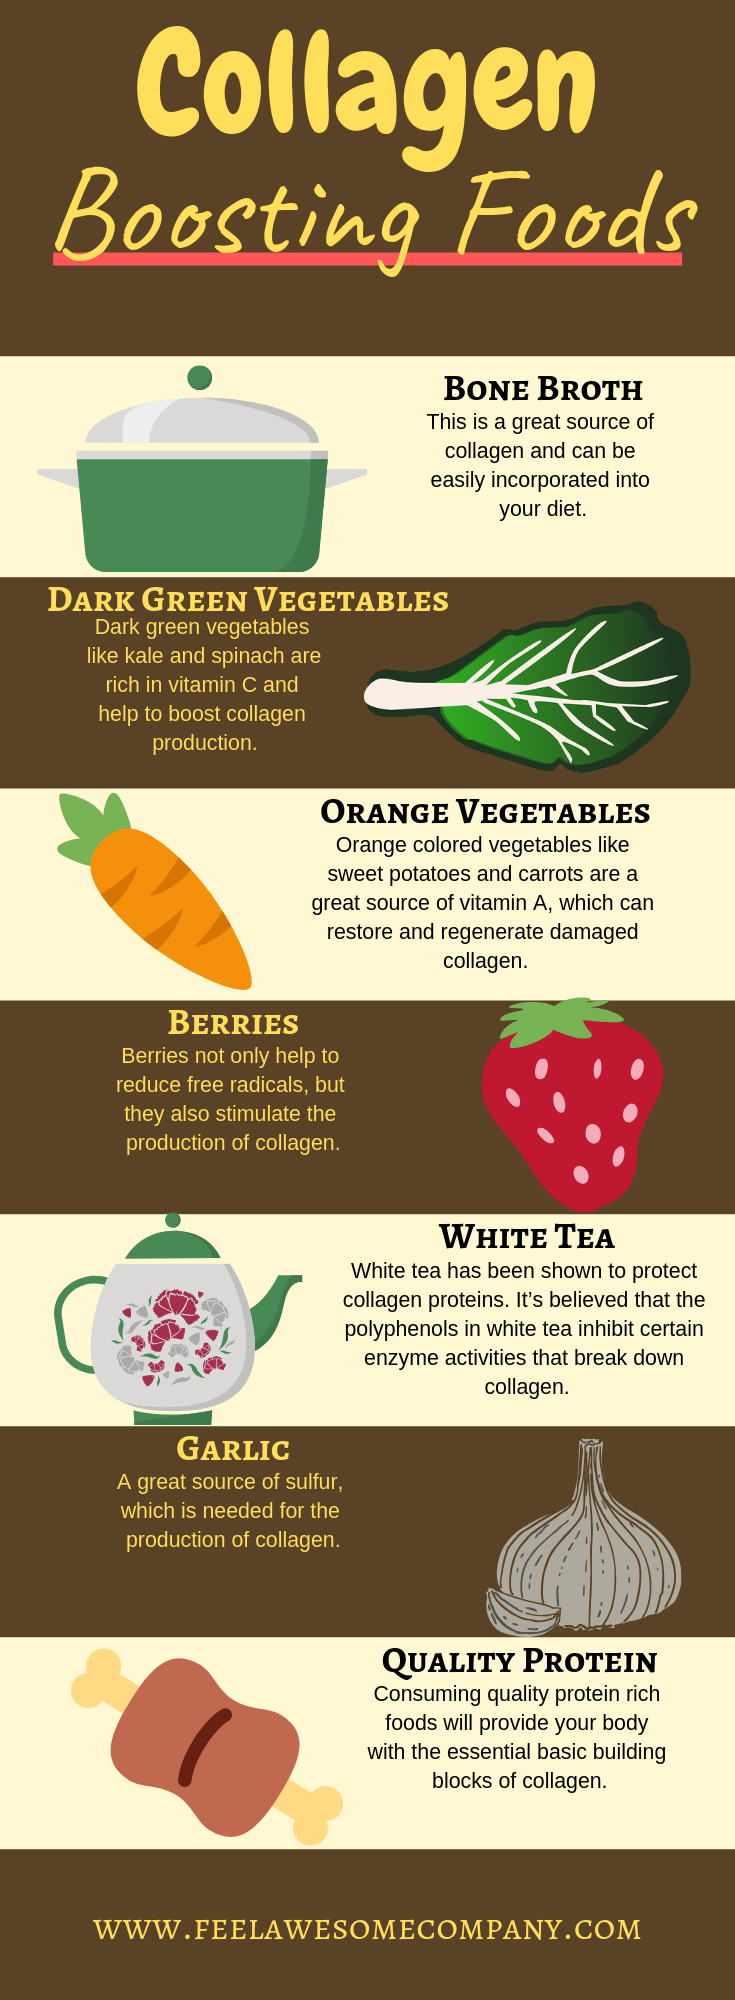 #contai #Fitness #Foods #Health #Protein Proteinas health and fitness: Here are some of the best foo...